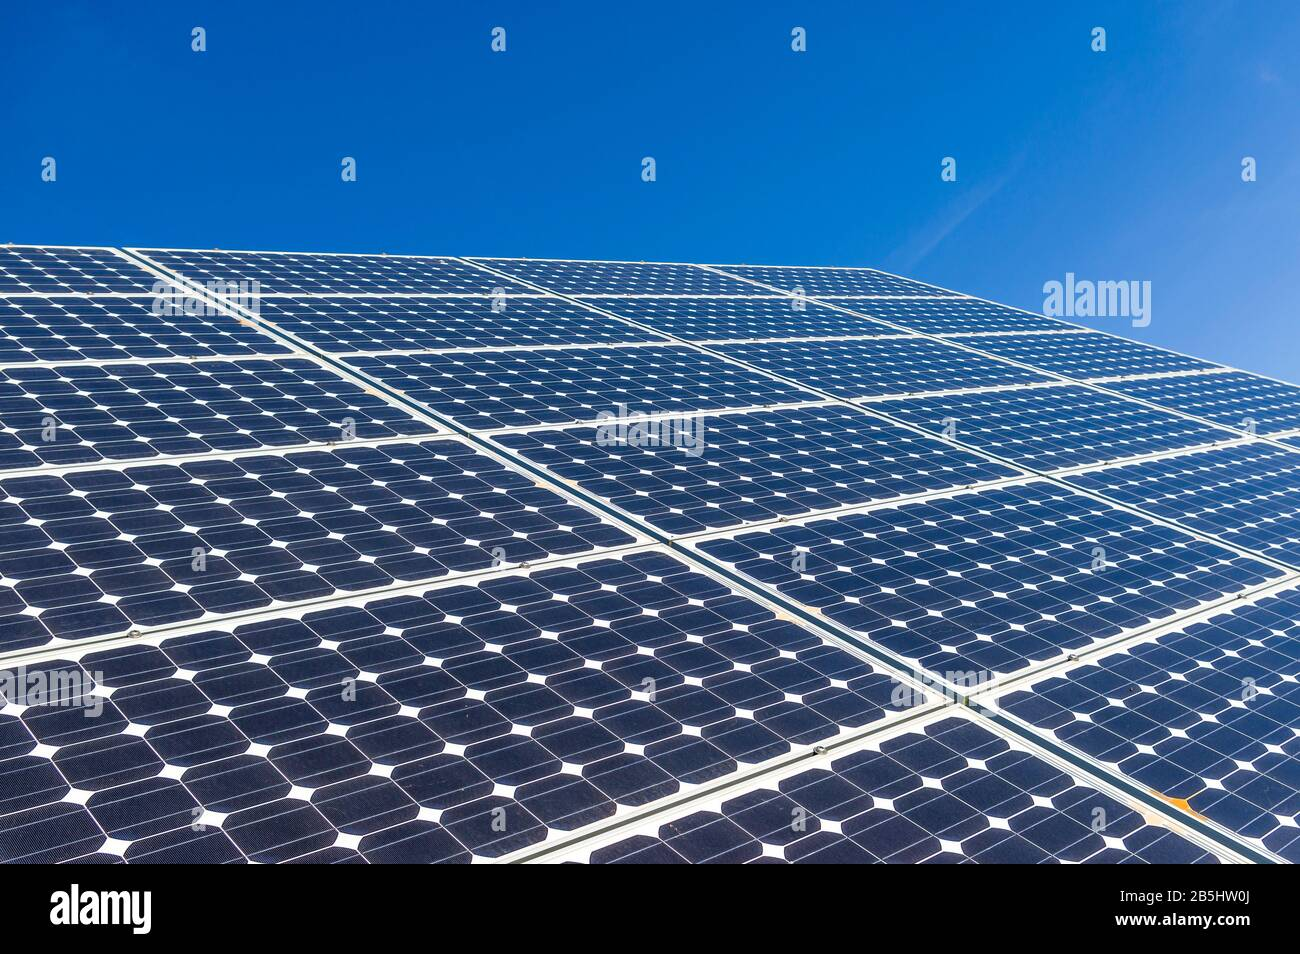 Close-up, detail view of solar panels of a solar power plant in cloudless and bright blue sky Stock Photo